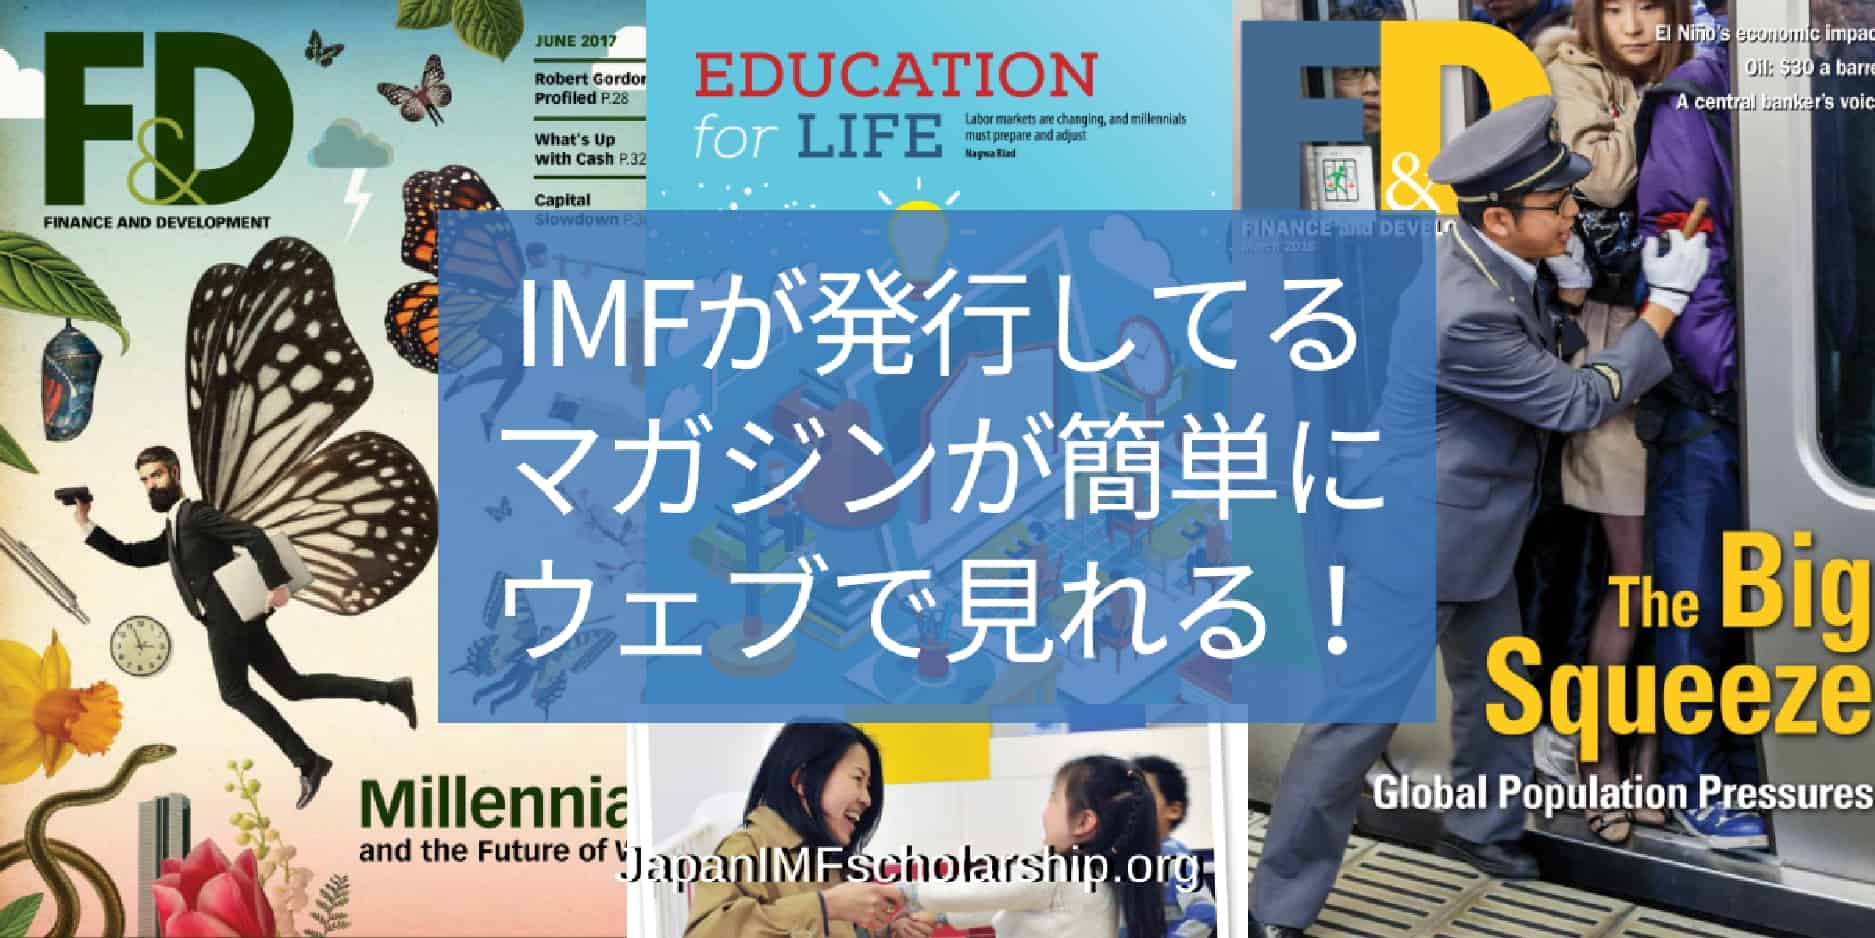 jisp web-fb IMF Magazine Finance and Development | visit japanimfscholarship.org